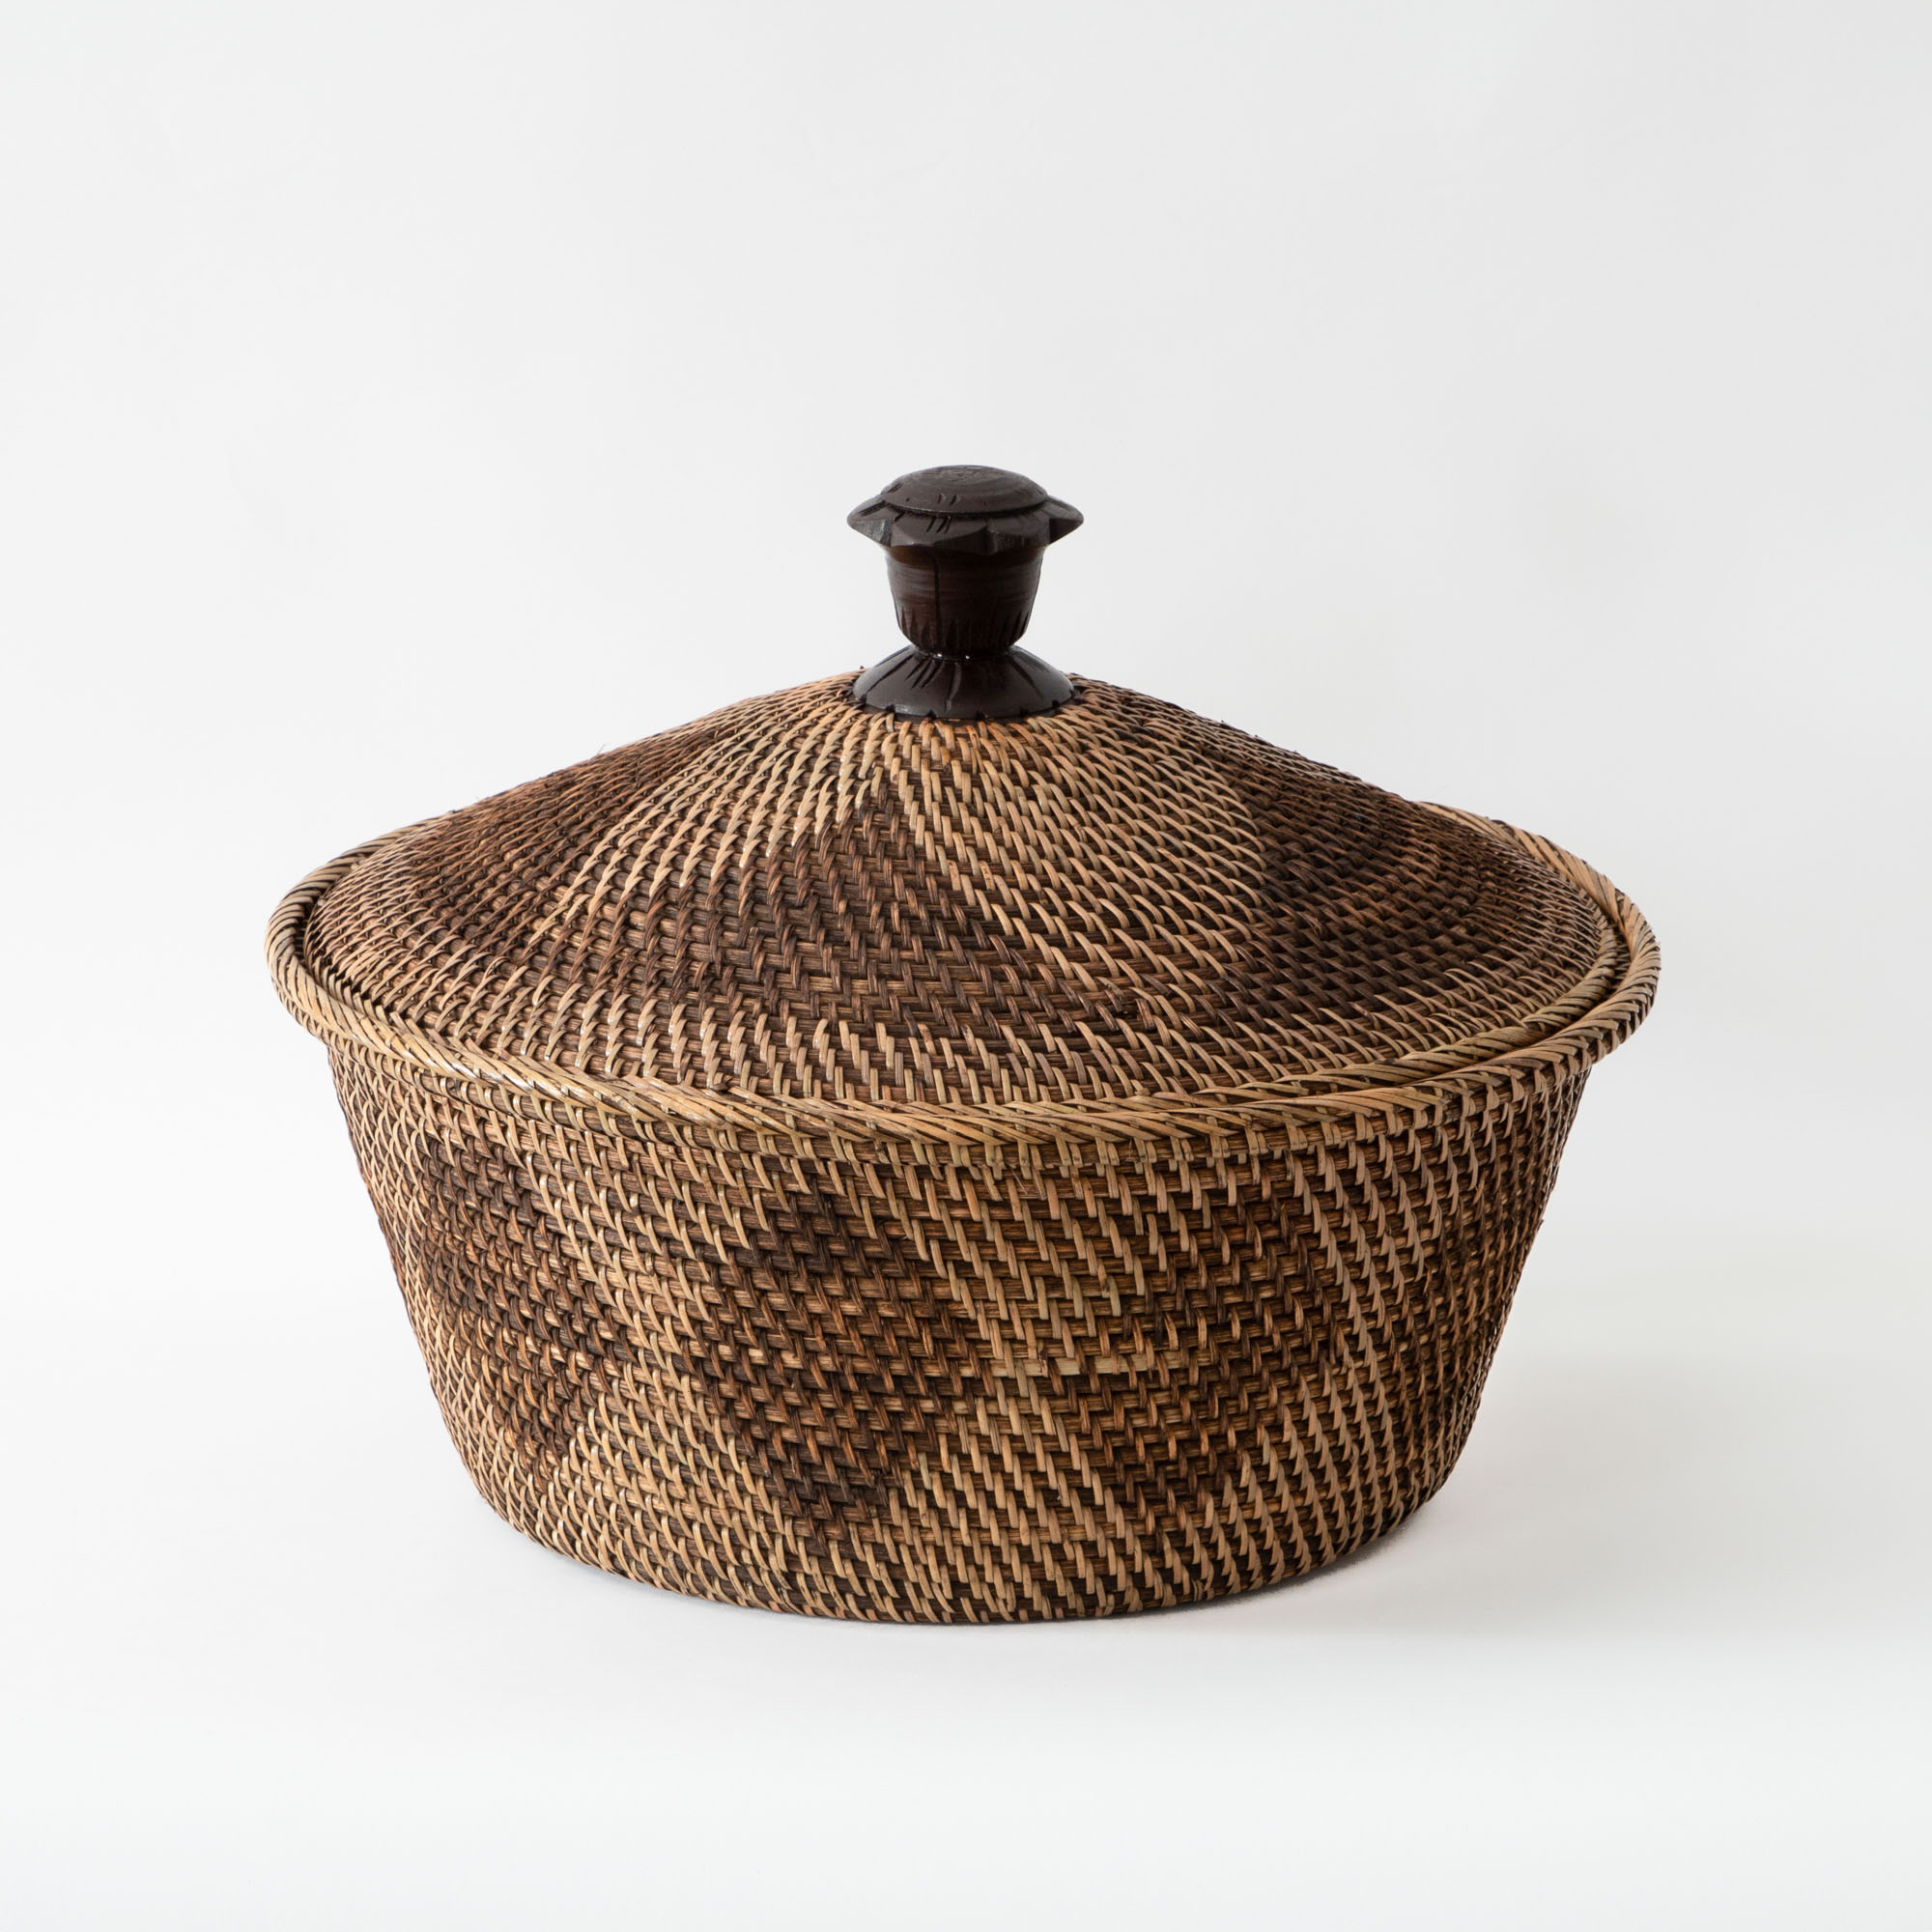 Art of Borneo - Fruit Basket with Umbrella Lid and Knob